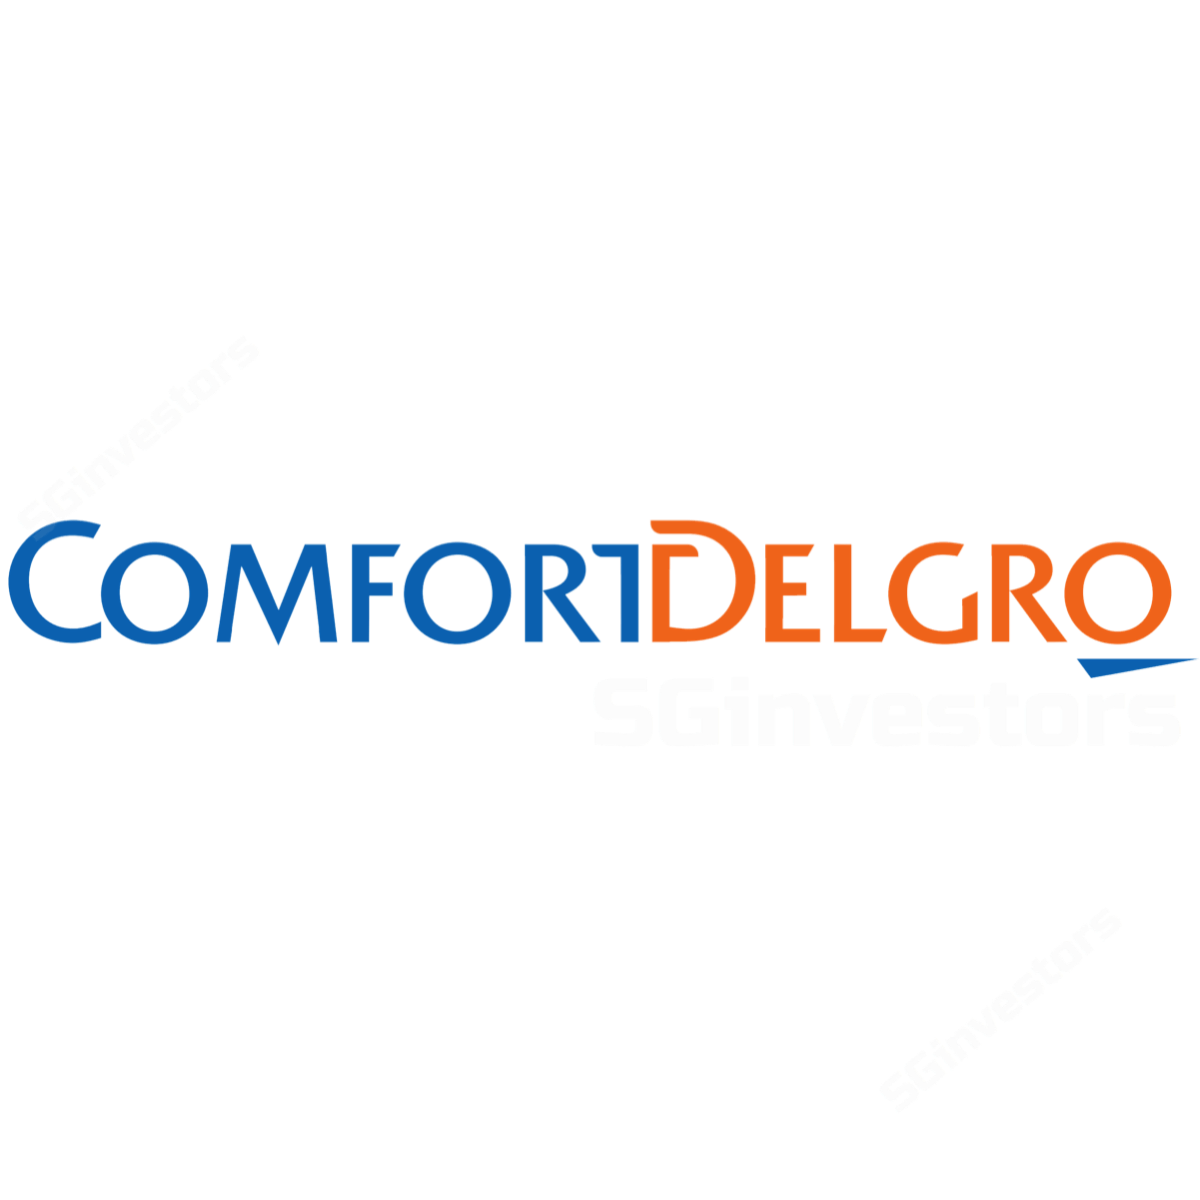 COMFORTDELGRO CORPORATION LTD (SGX:C52) | SGinvestors.io